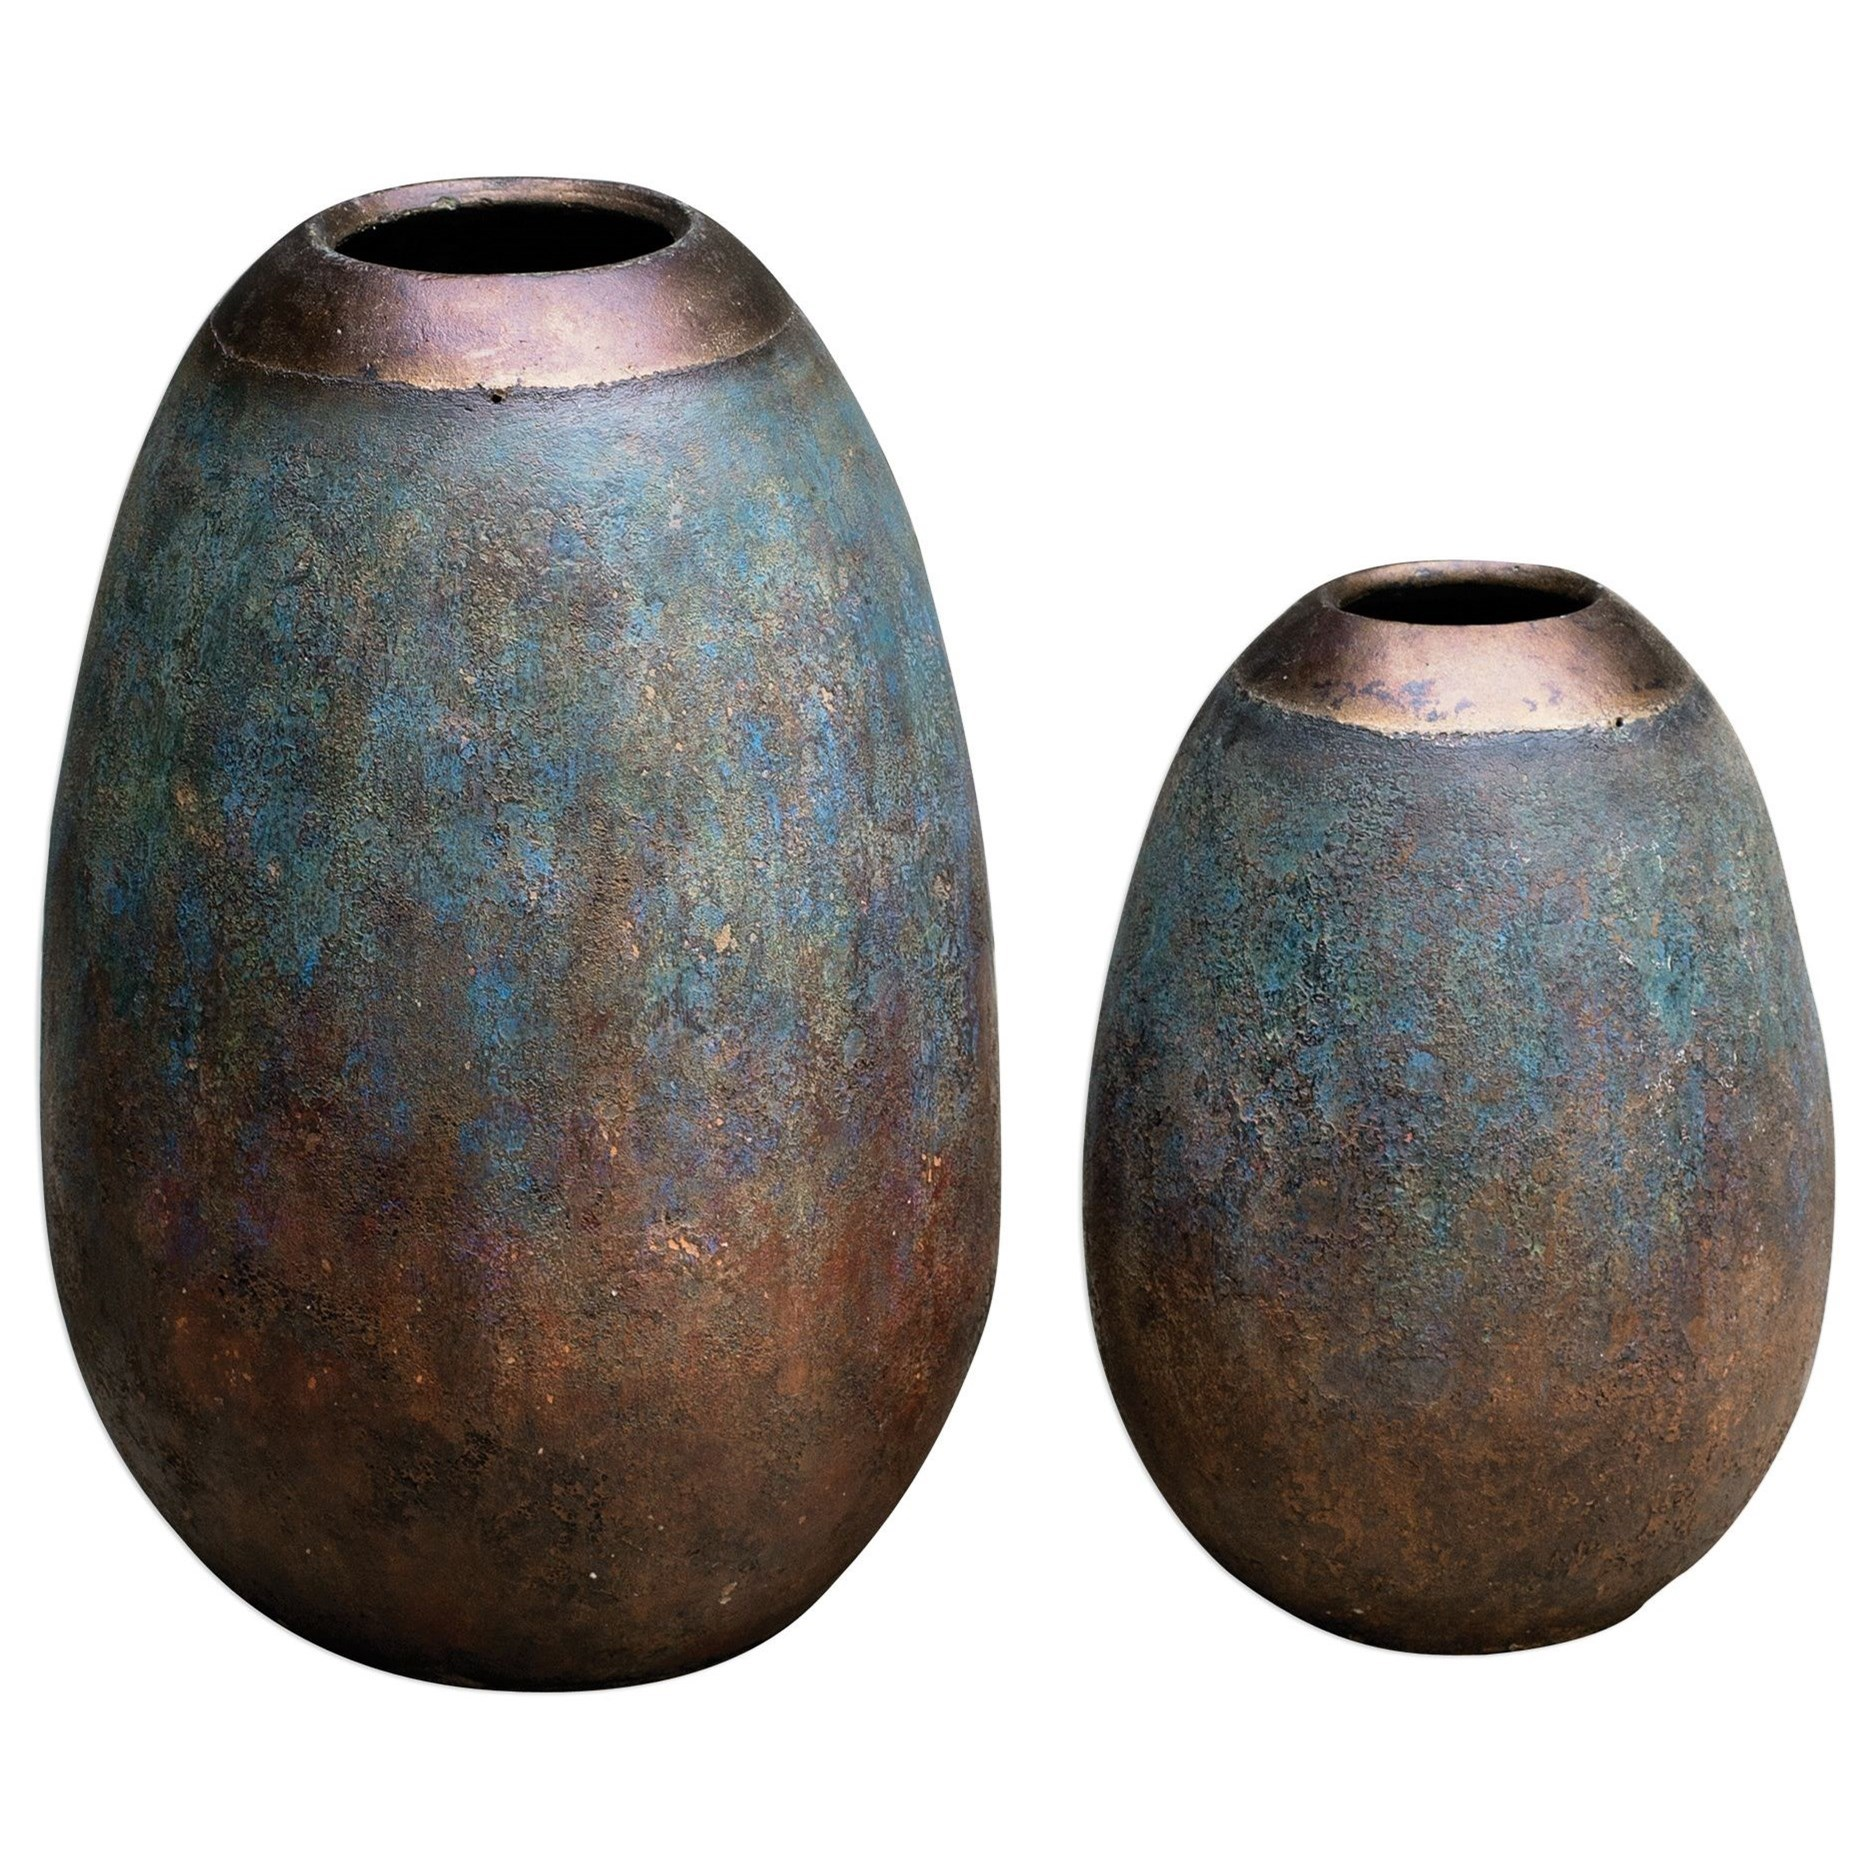 Accessories - Vases and Urns Pavak Etruscan Sky Vases S/2 at Becker Furniture